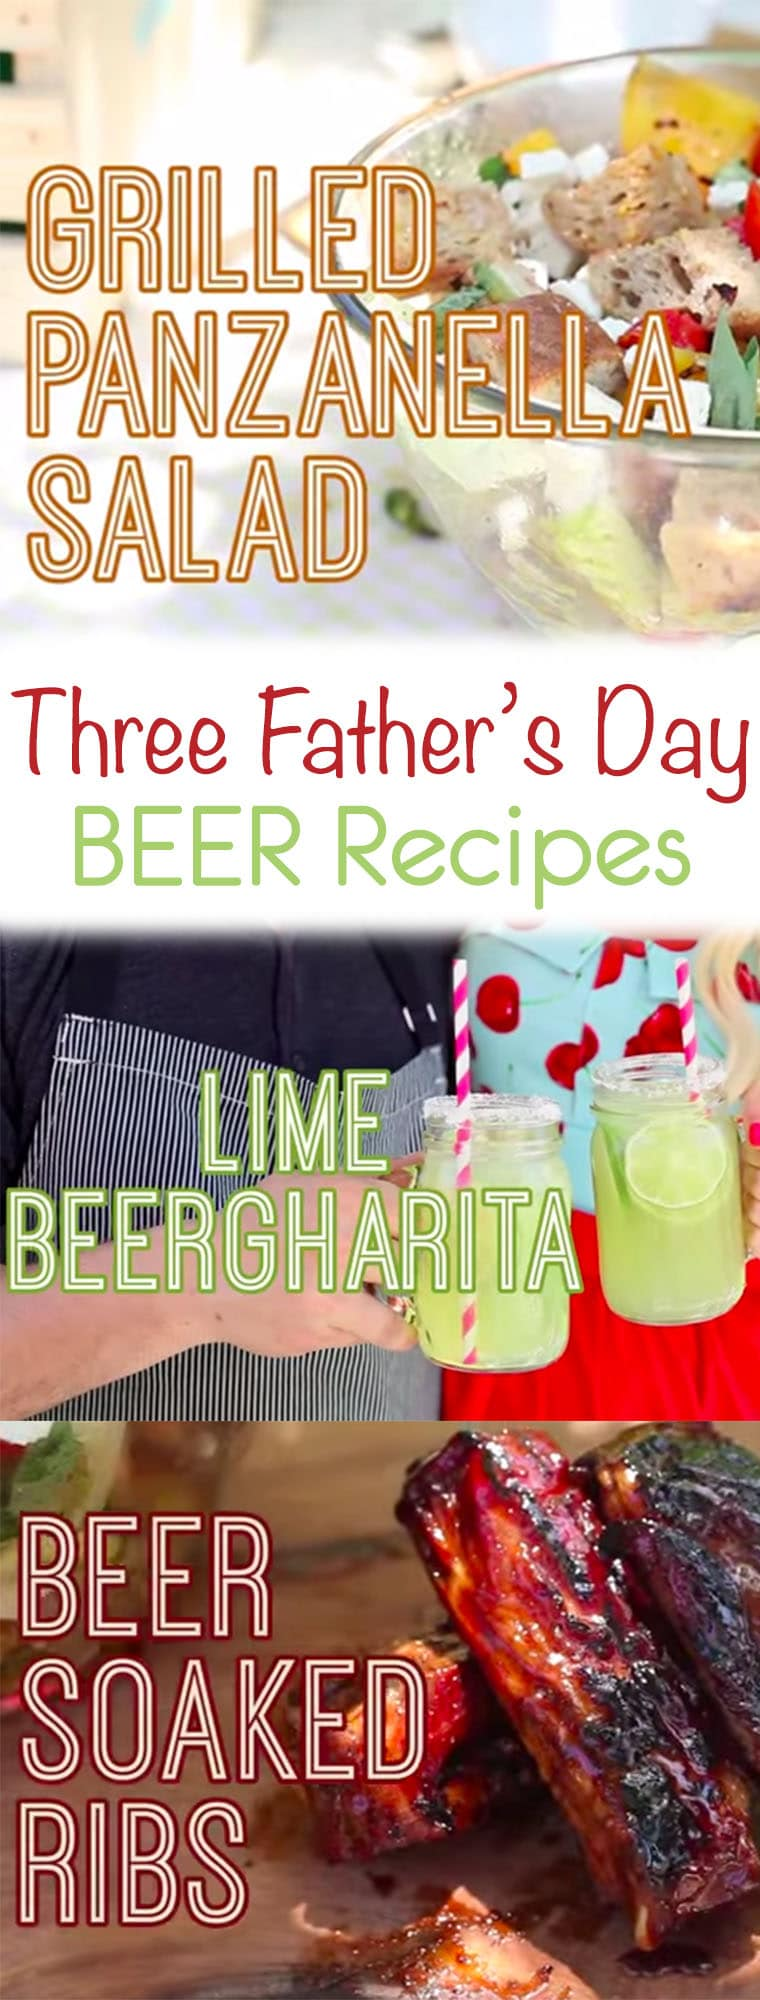 What could be more dad-day friendly than some beer recipes on the BBQ? To celebrate, I got together with one of my favourite friends and foodies, Matt Basile of Fidel Gastros for a little Father's Day Beer & BBQ Throwdown!